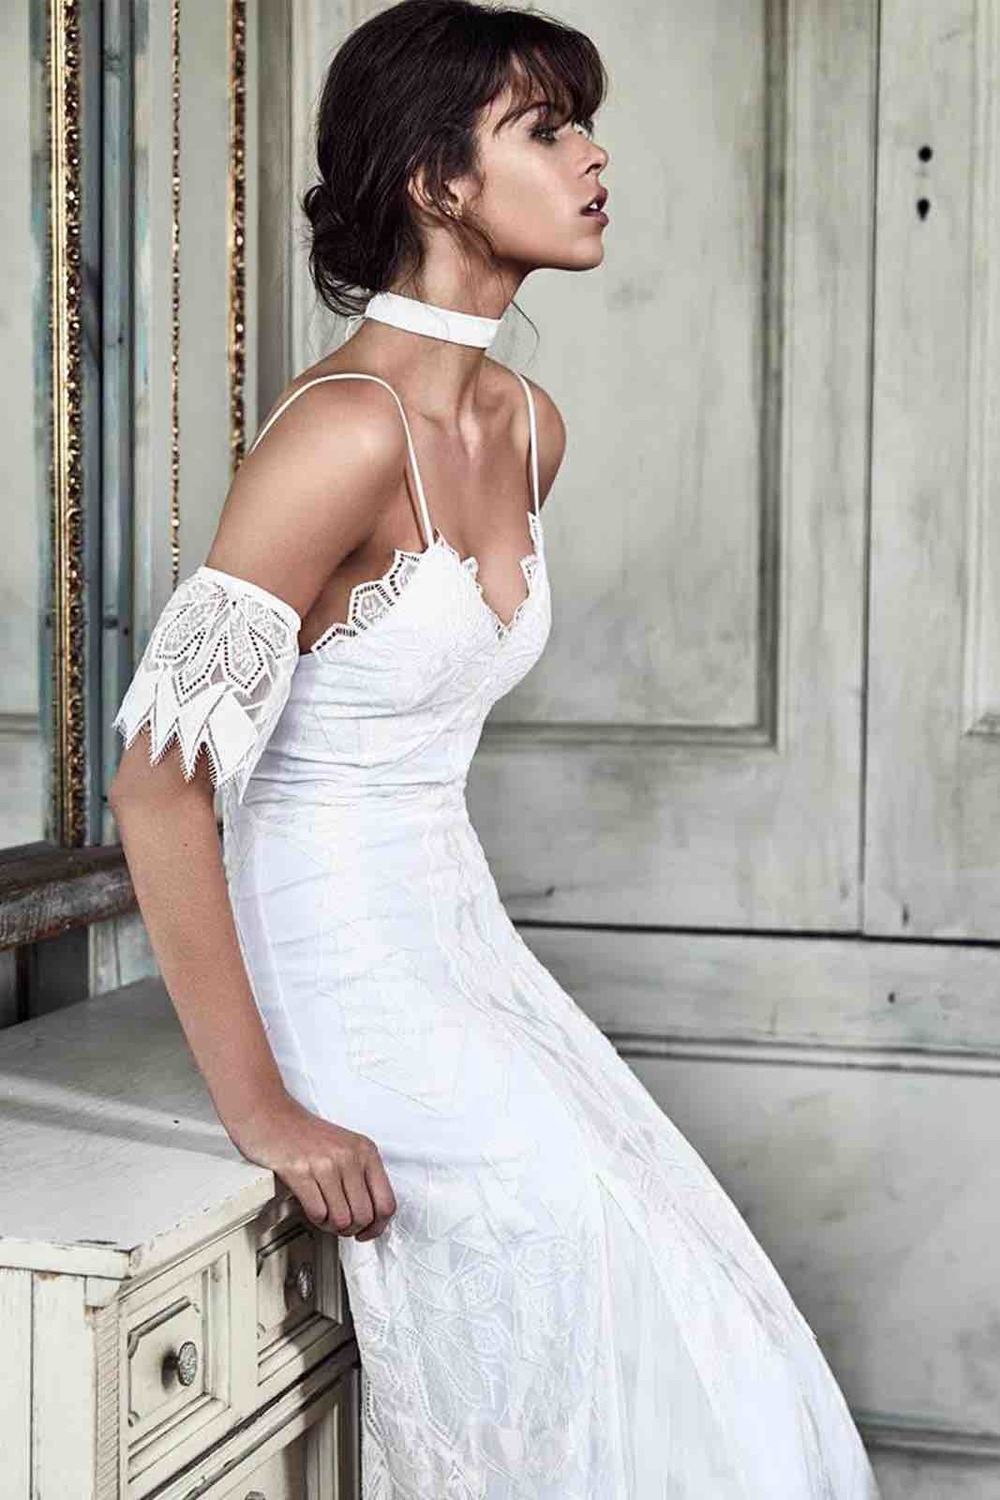 Samba Dress Side View - Blanc Collection from Grace Loves Lace.jpg